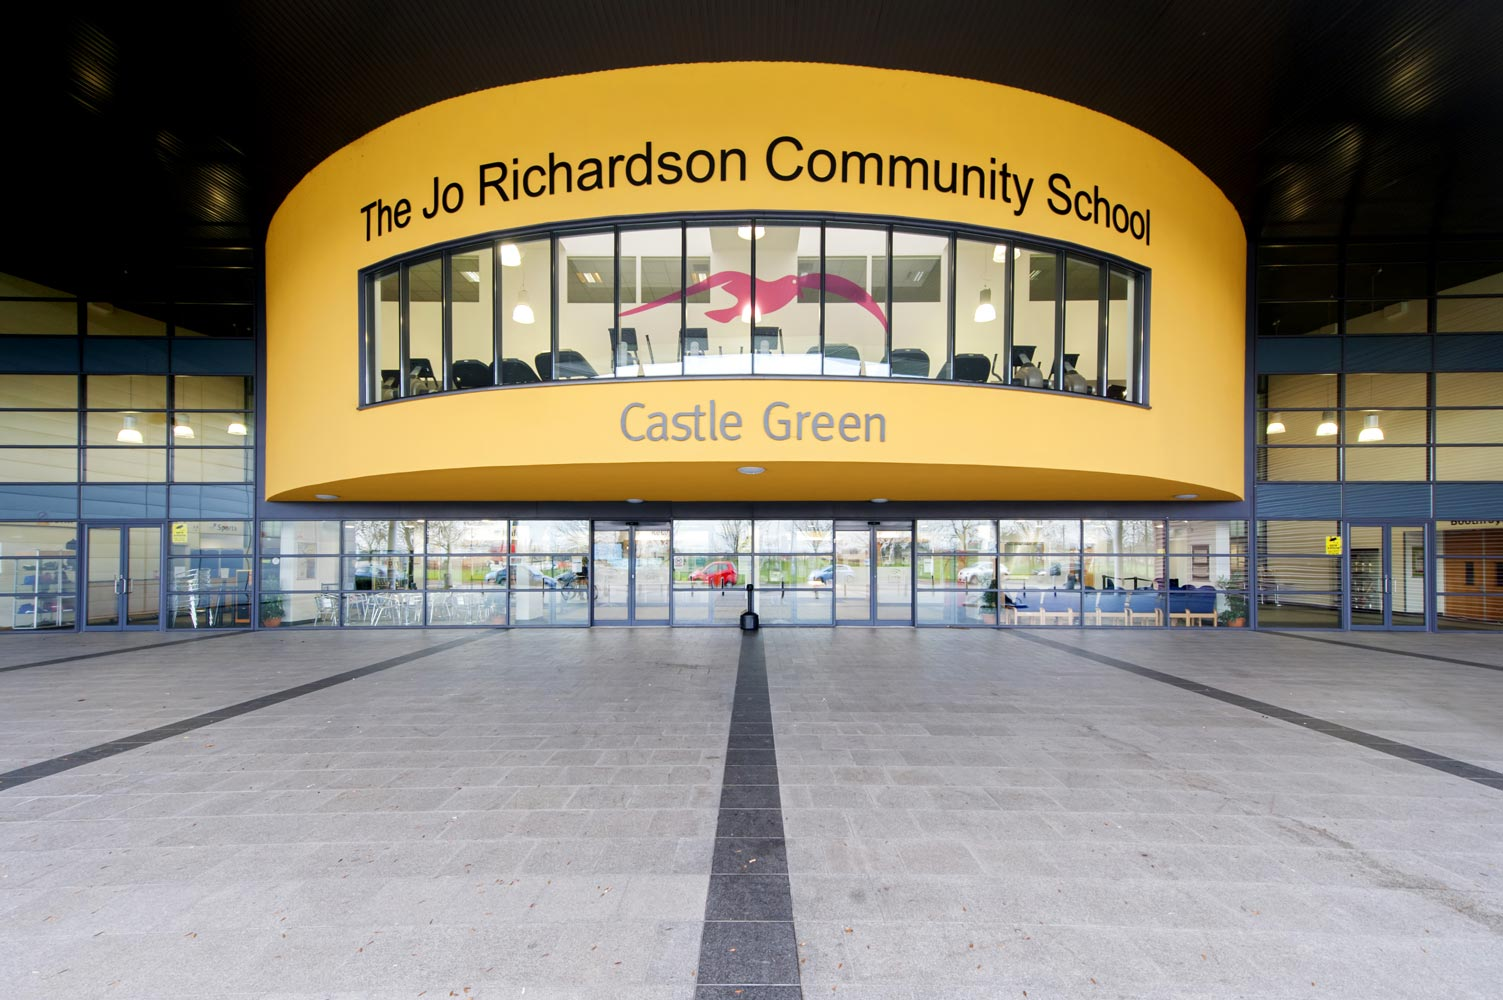 Award winning school photography of Jo Richardson Community School building